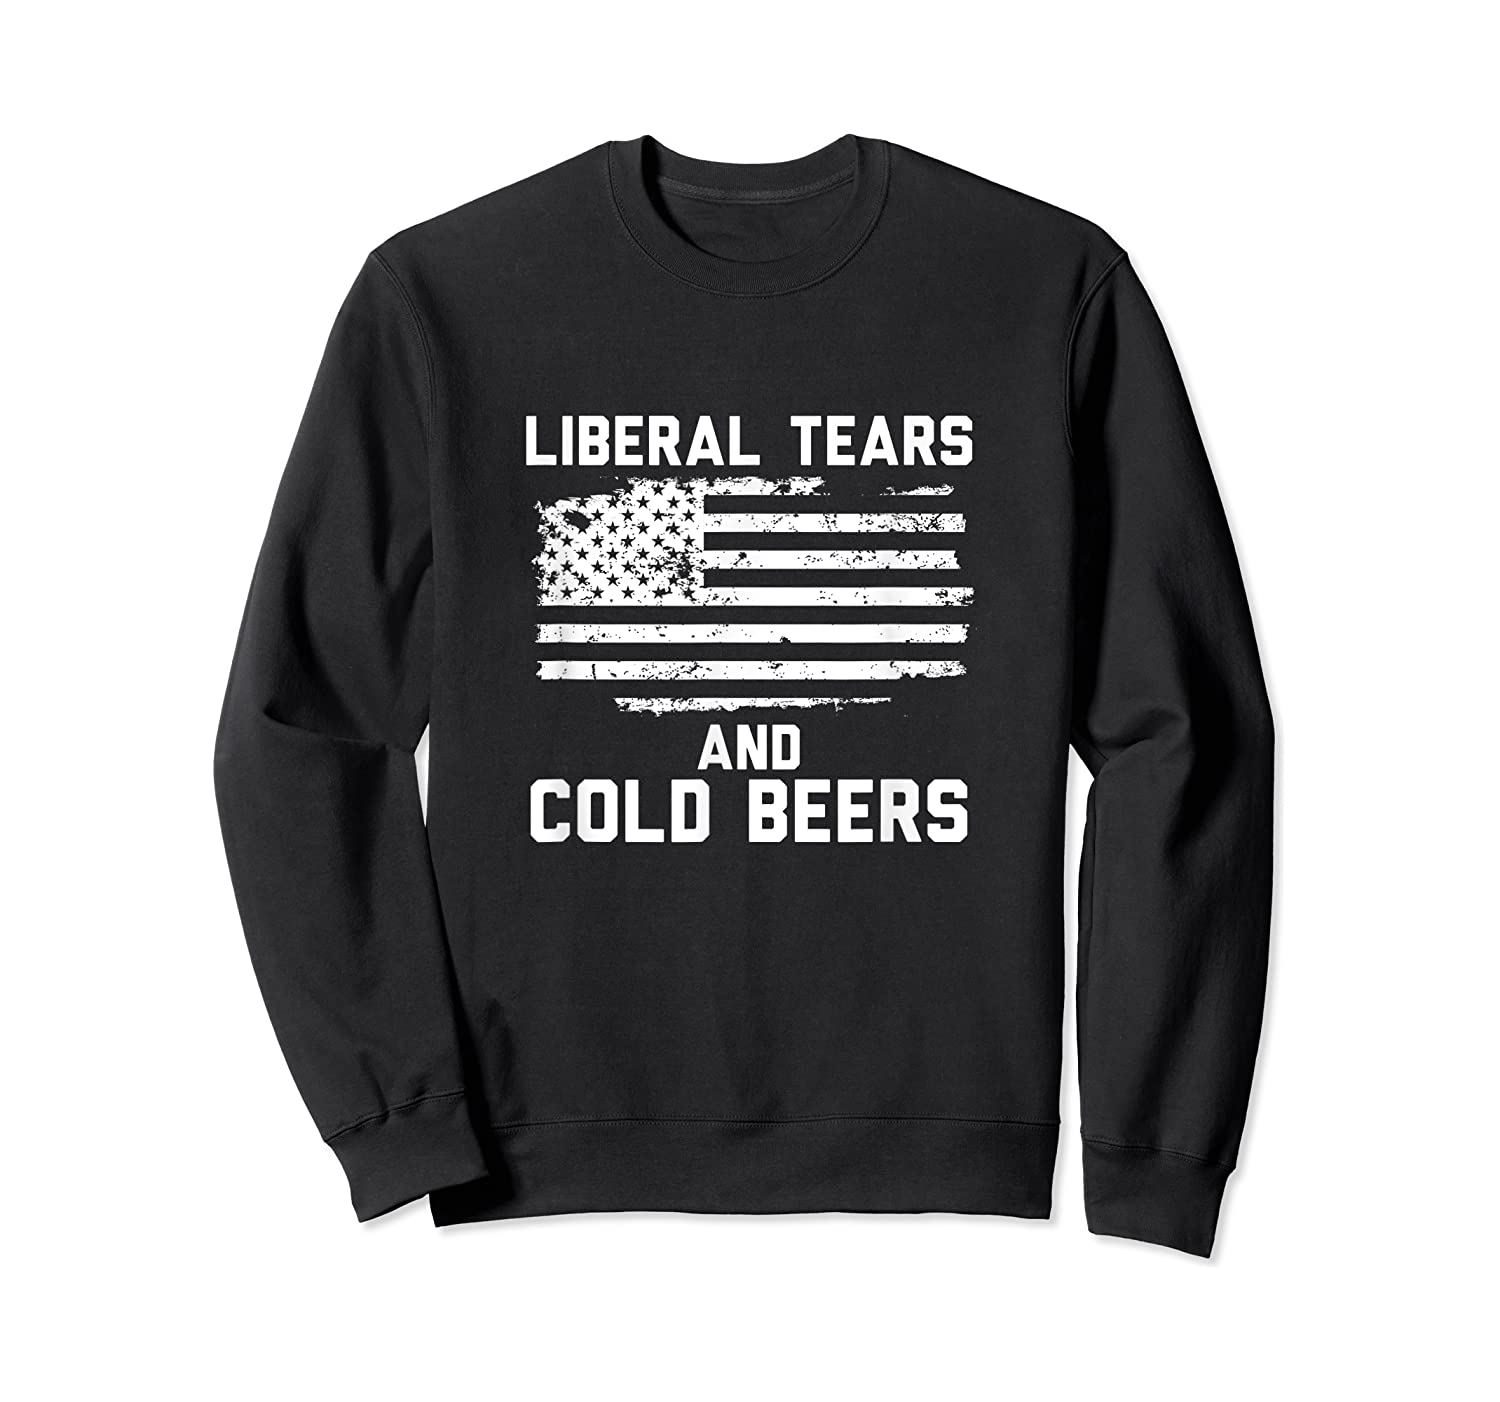 Funny Liberal Tears And Cold Beers T-shirt Crewneck Sweater